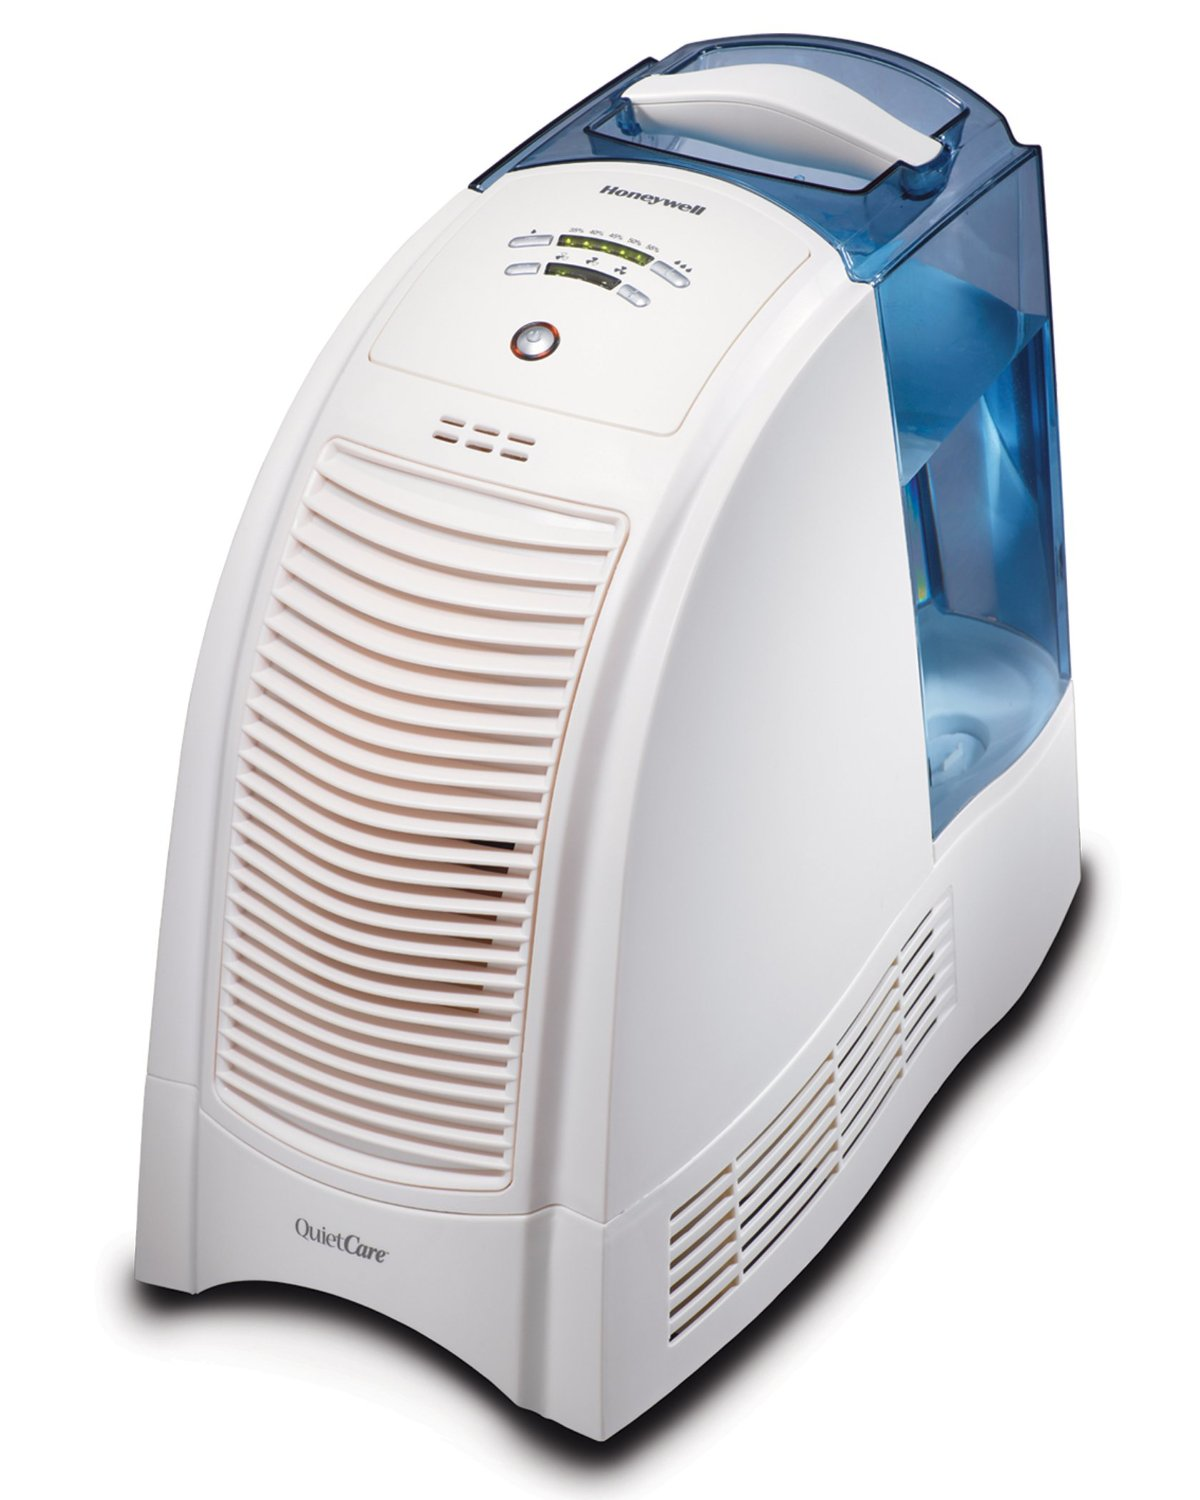 Honeywell Humidifier Review 2014 2015 Reviews and Guides #24476C